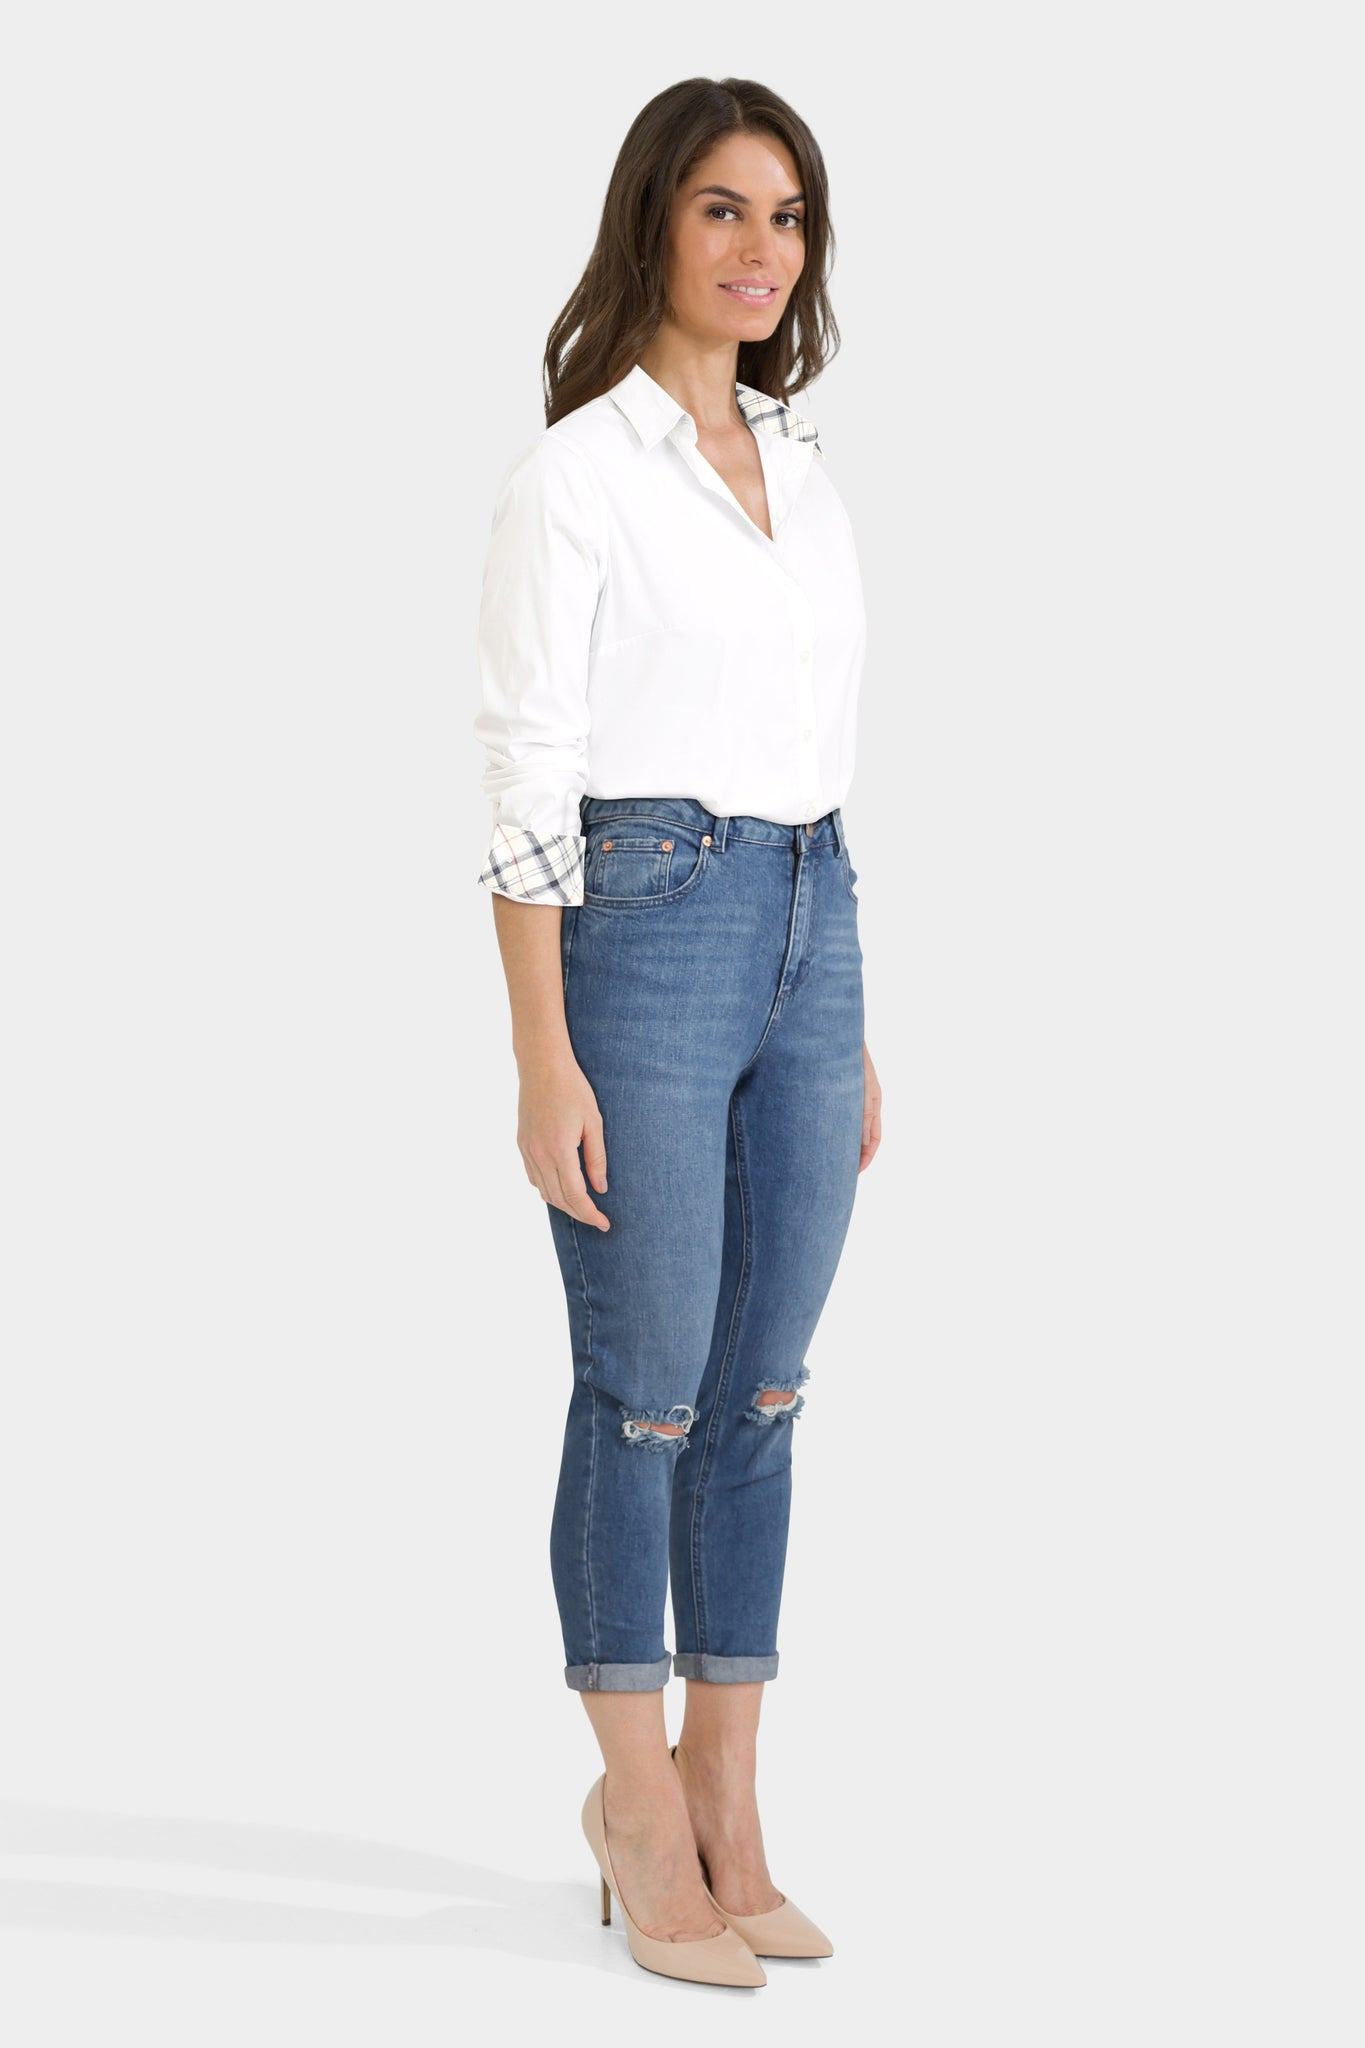 Collared Shirt With Jeans